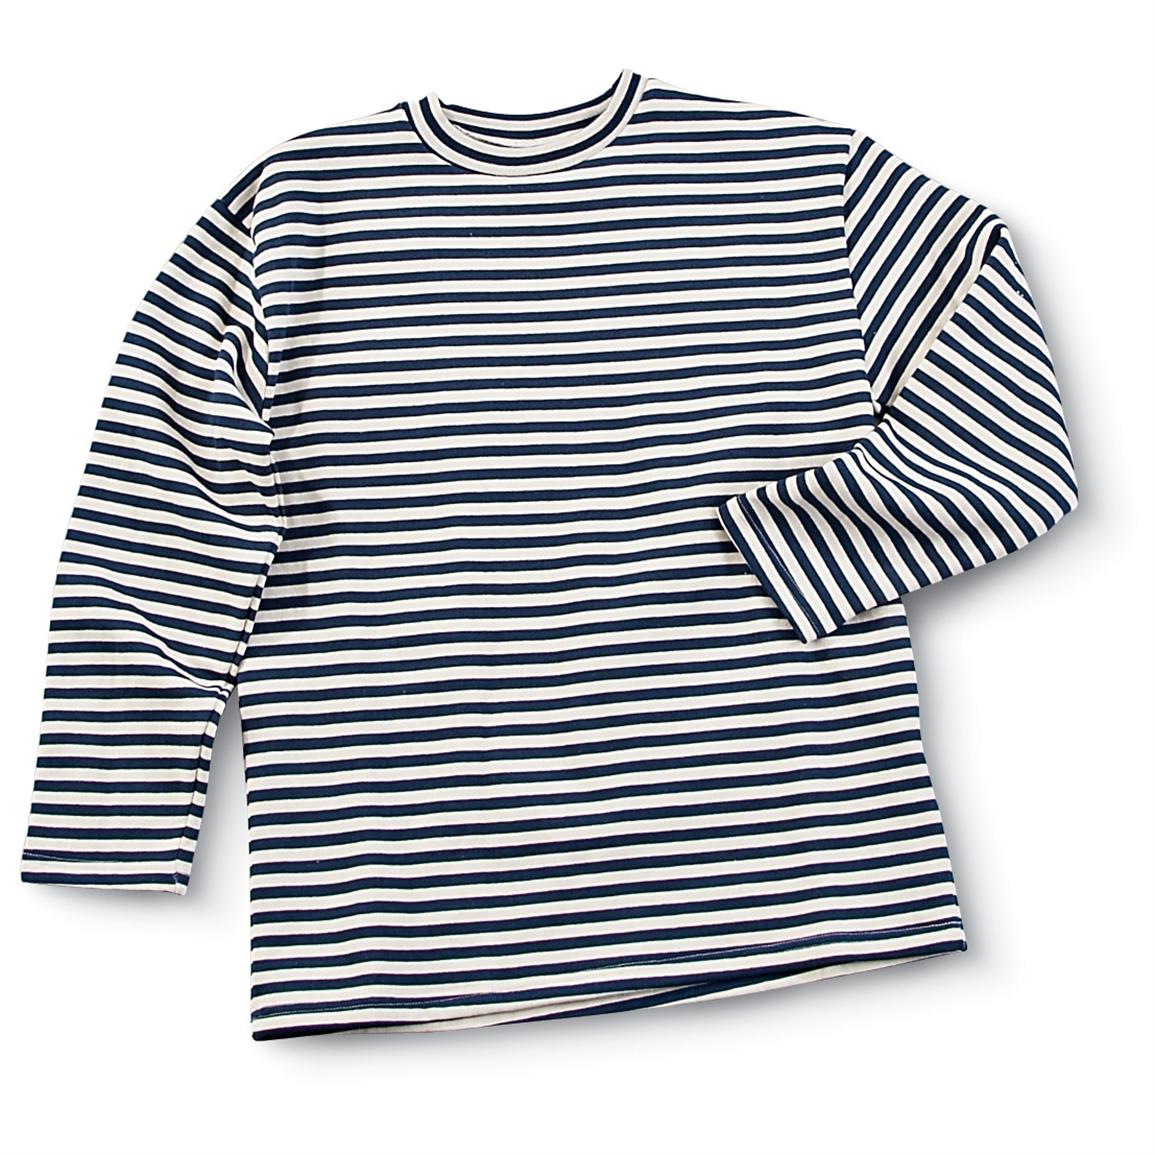 Russian Military-issue Striped Winter Shirt